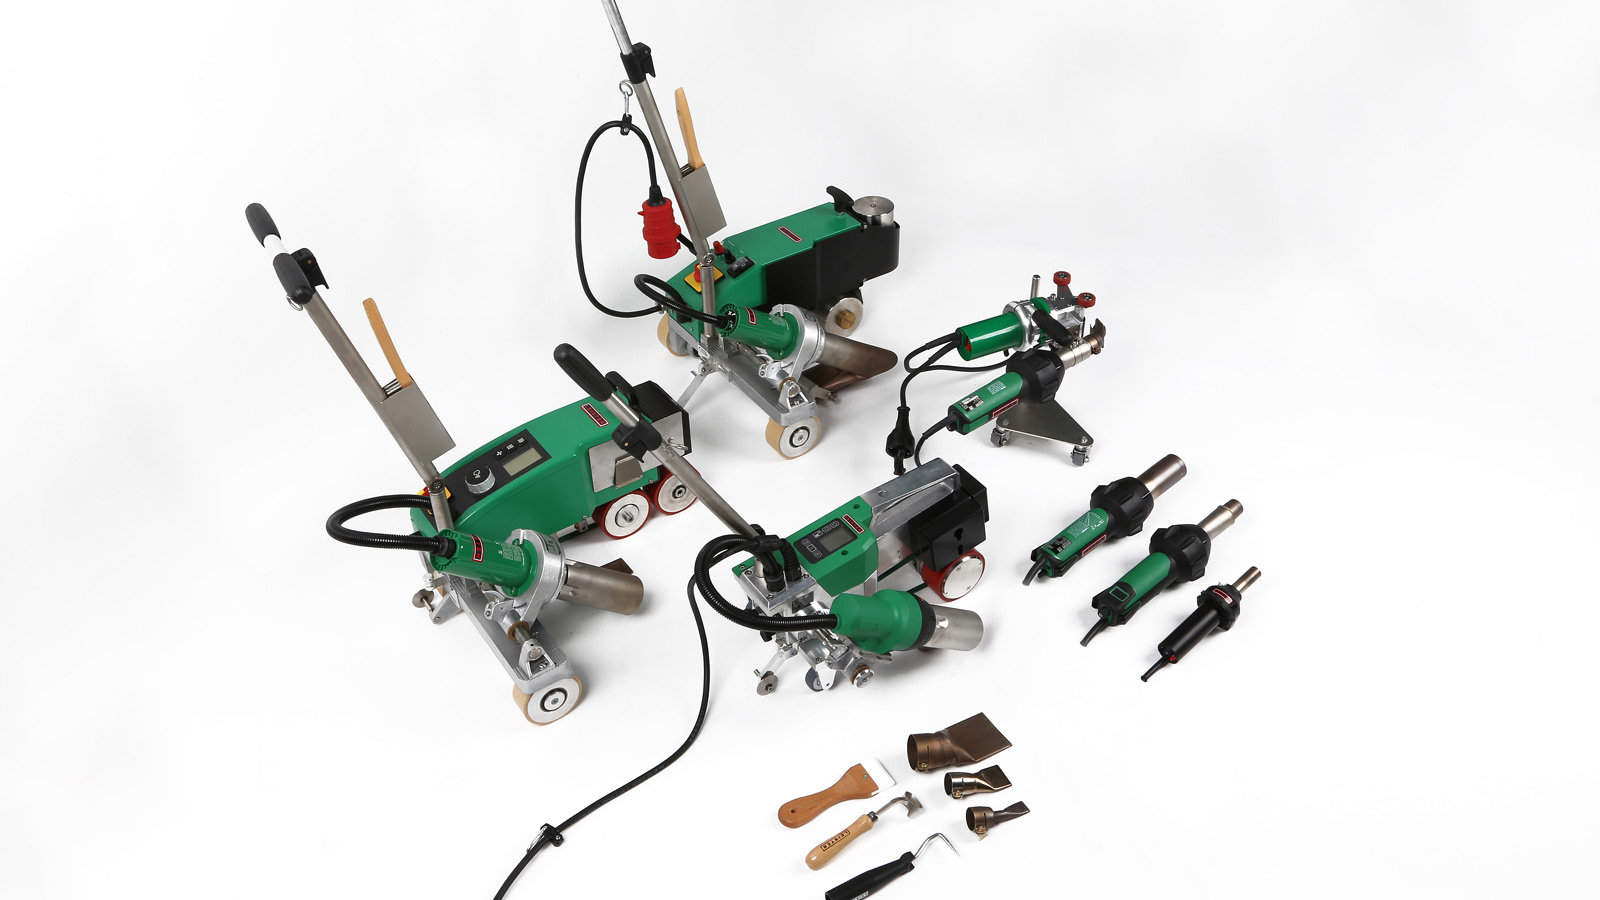 Leister Plastic Welding - Roofing Equipment